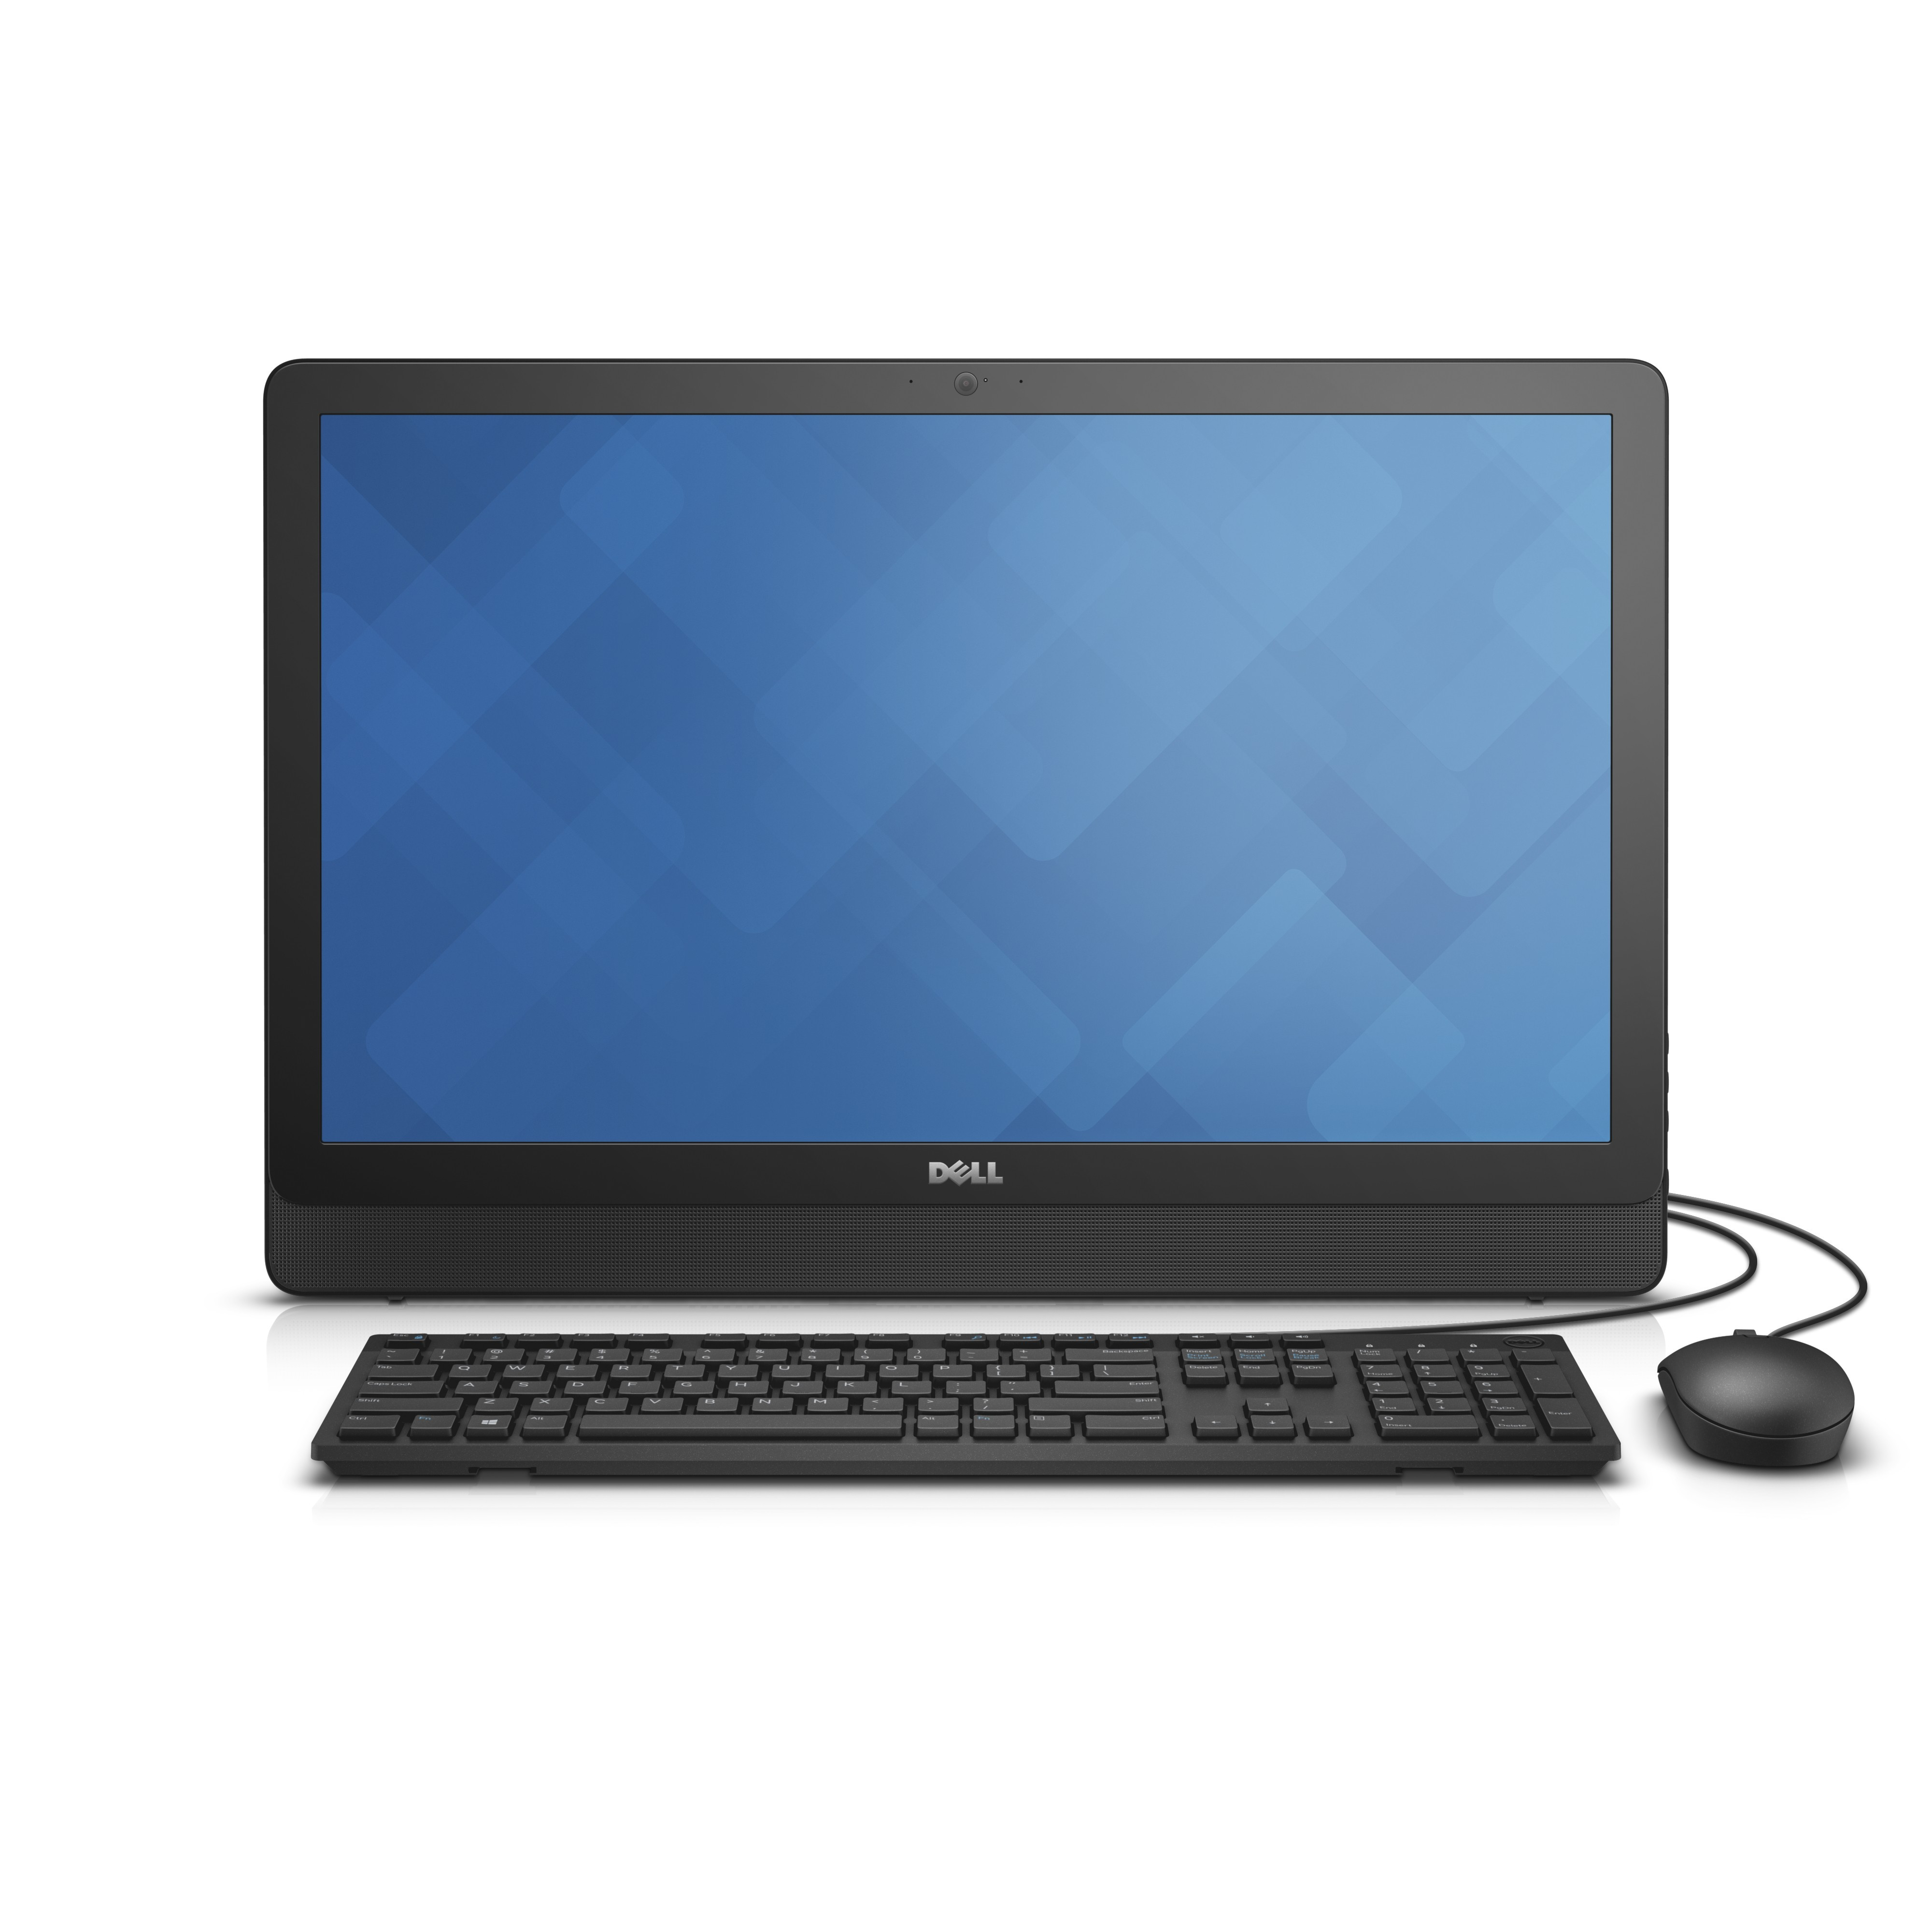 "DELL INSPIRON 3464-B20W1081C i5-7200U 8GB 1TB 2GB 920MX 23.8"" NONTOUCH WIN10 ALL IN ONE PC"